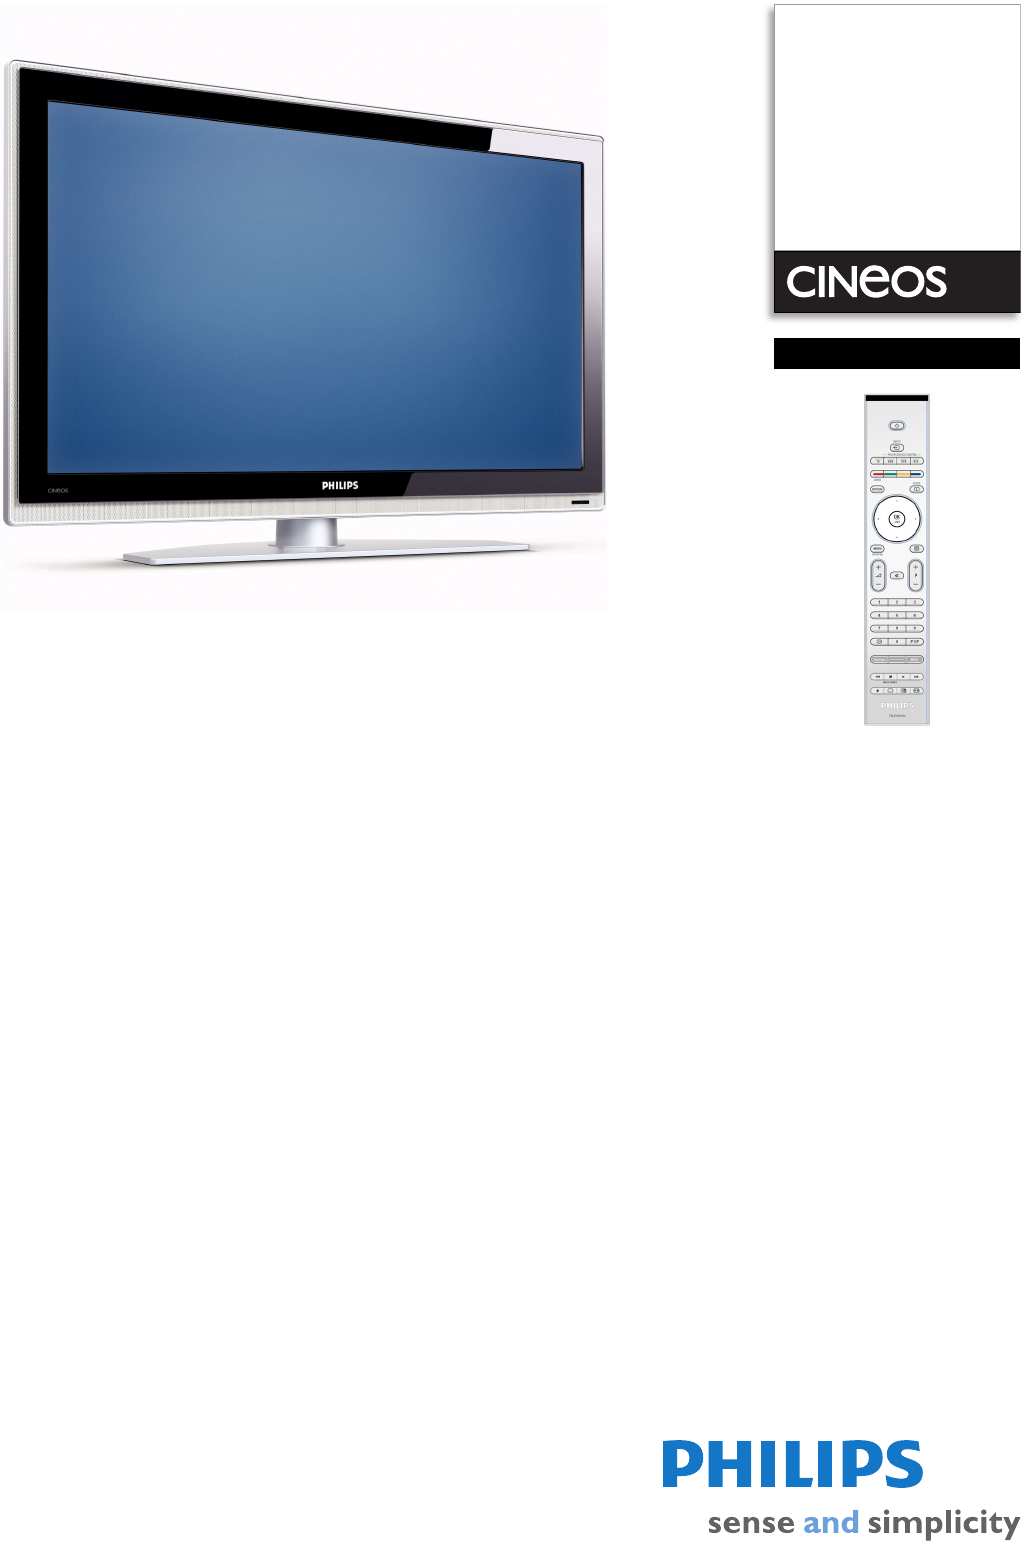 Philips cineos hts9800w manual.